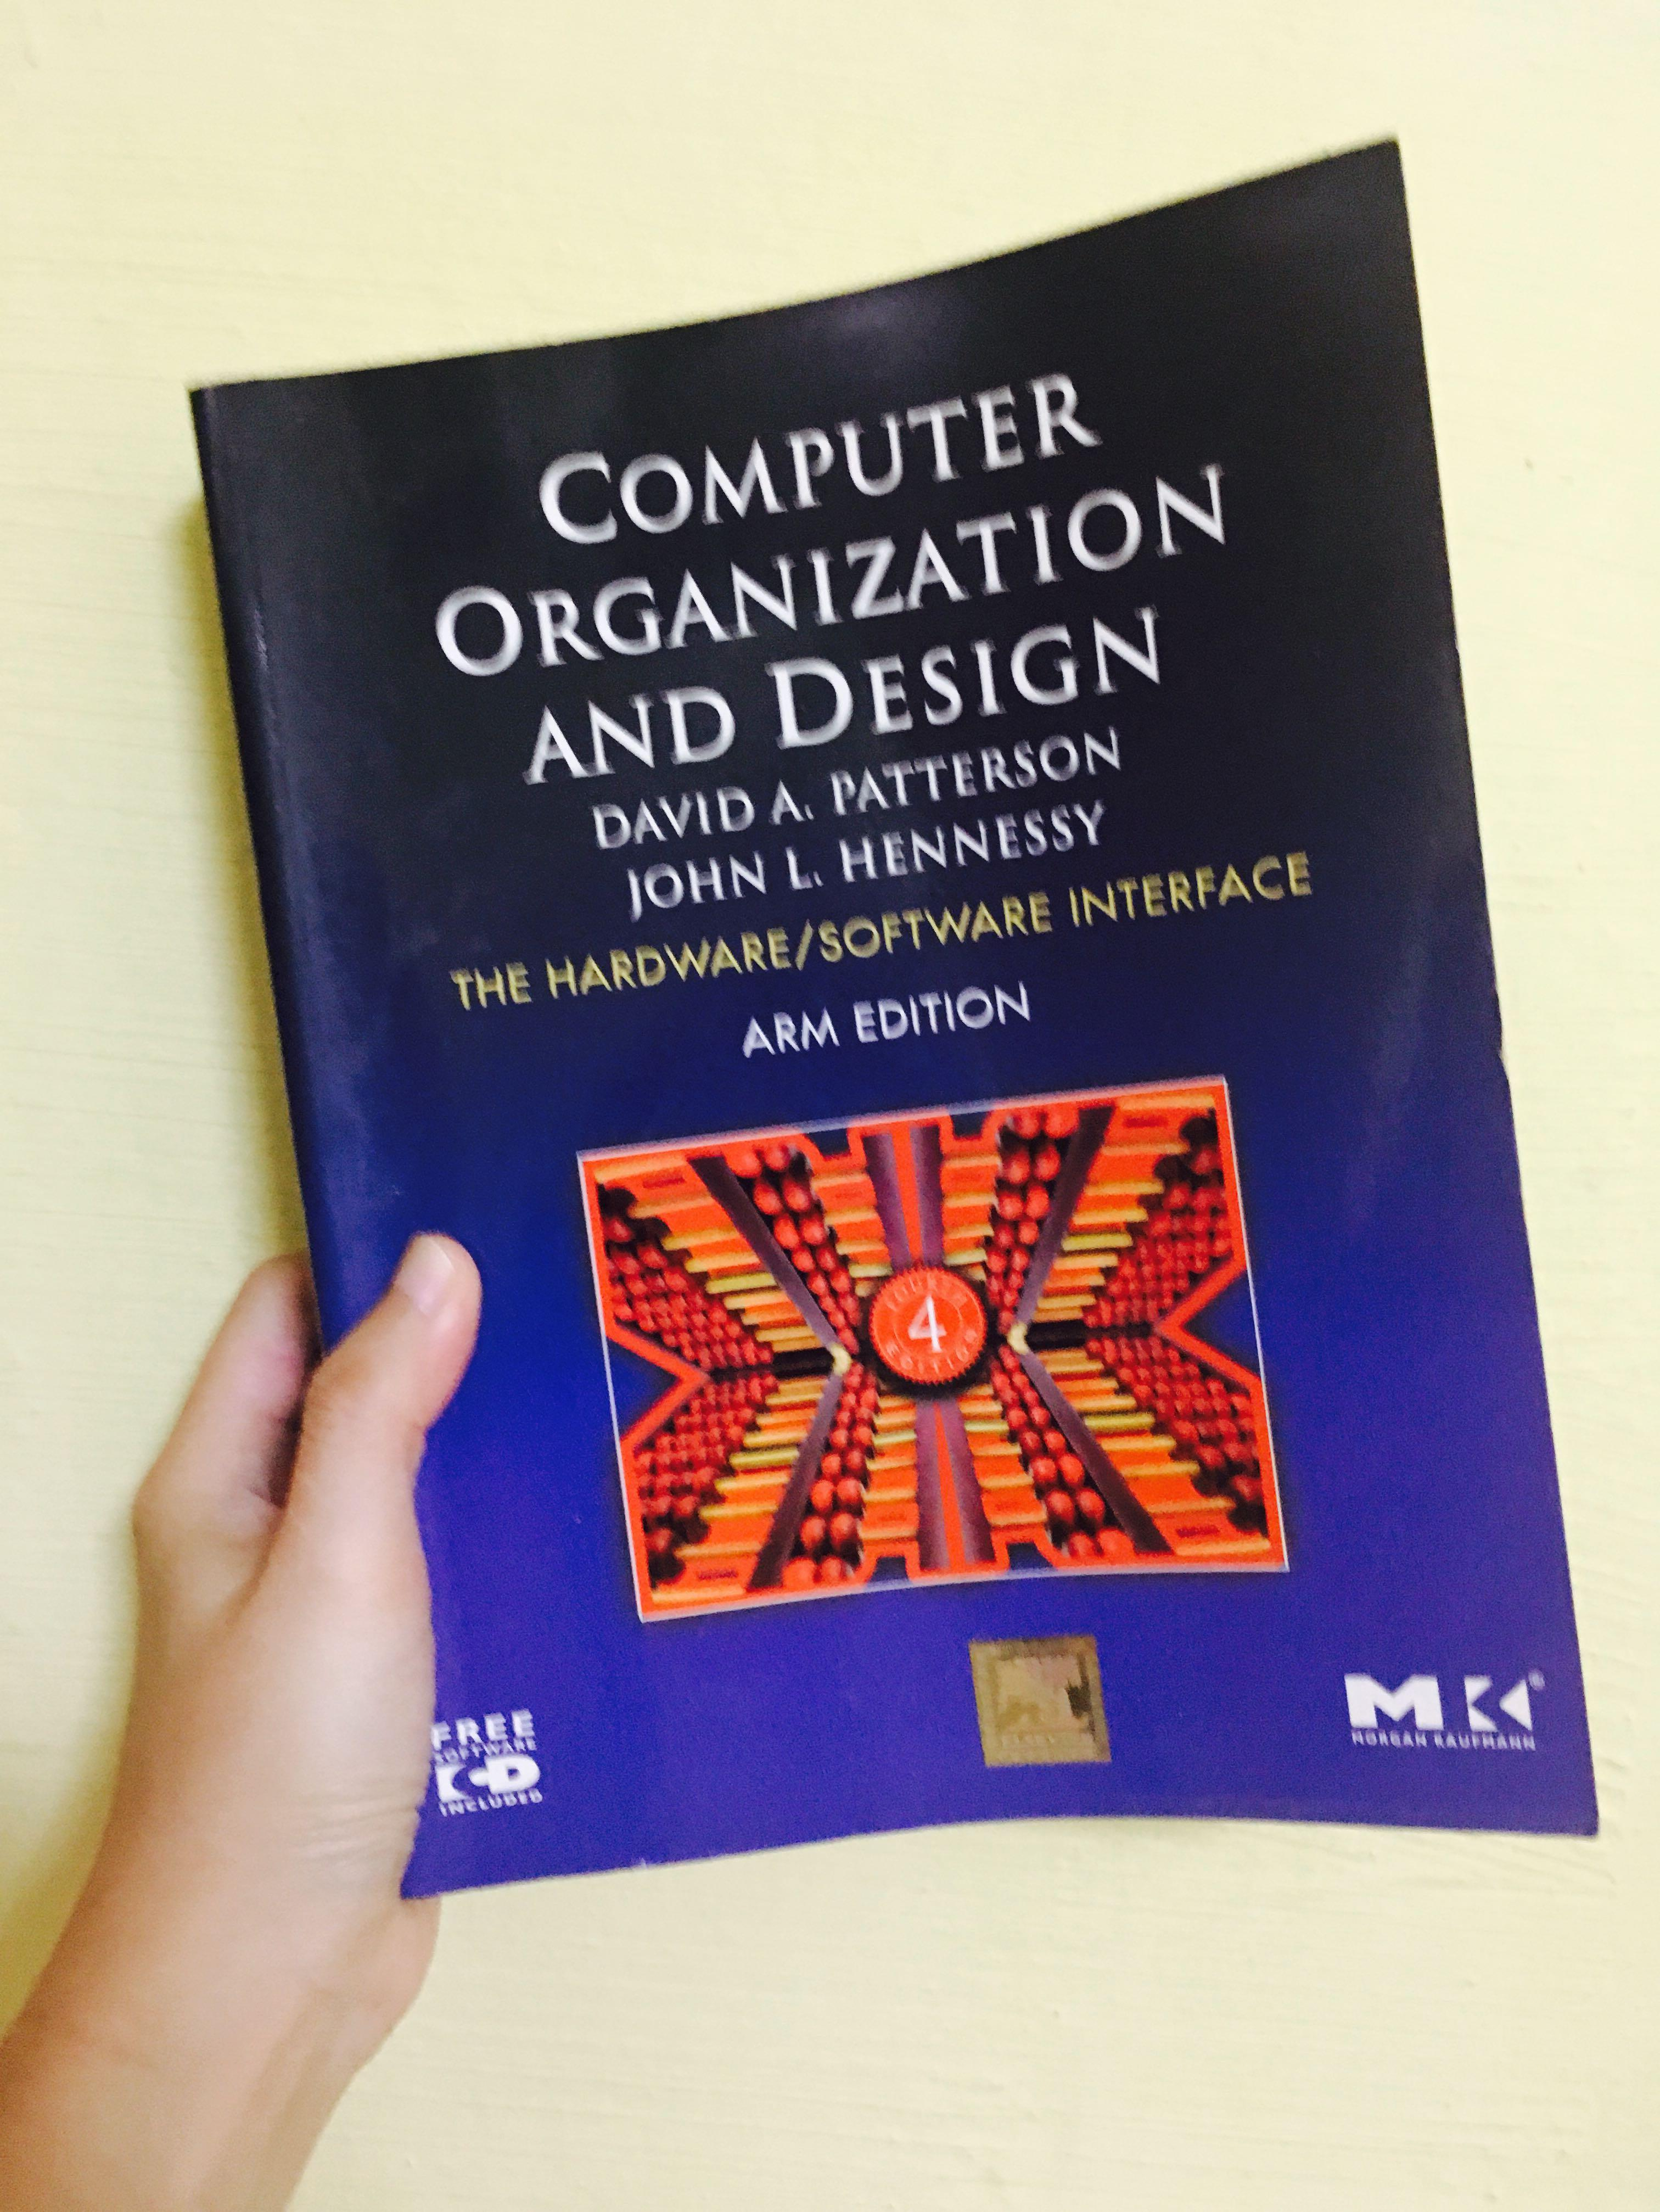 Computer Organization And Design Mips Edition The Hardware Software Interface Books Stationery Textbooks Tertiary On Carousell